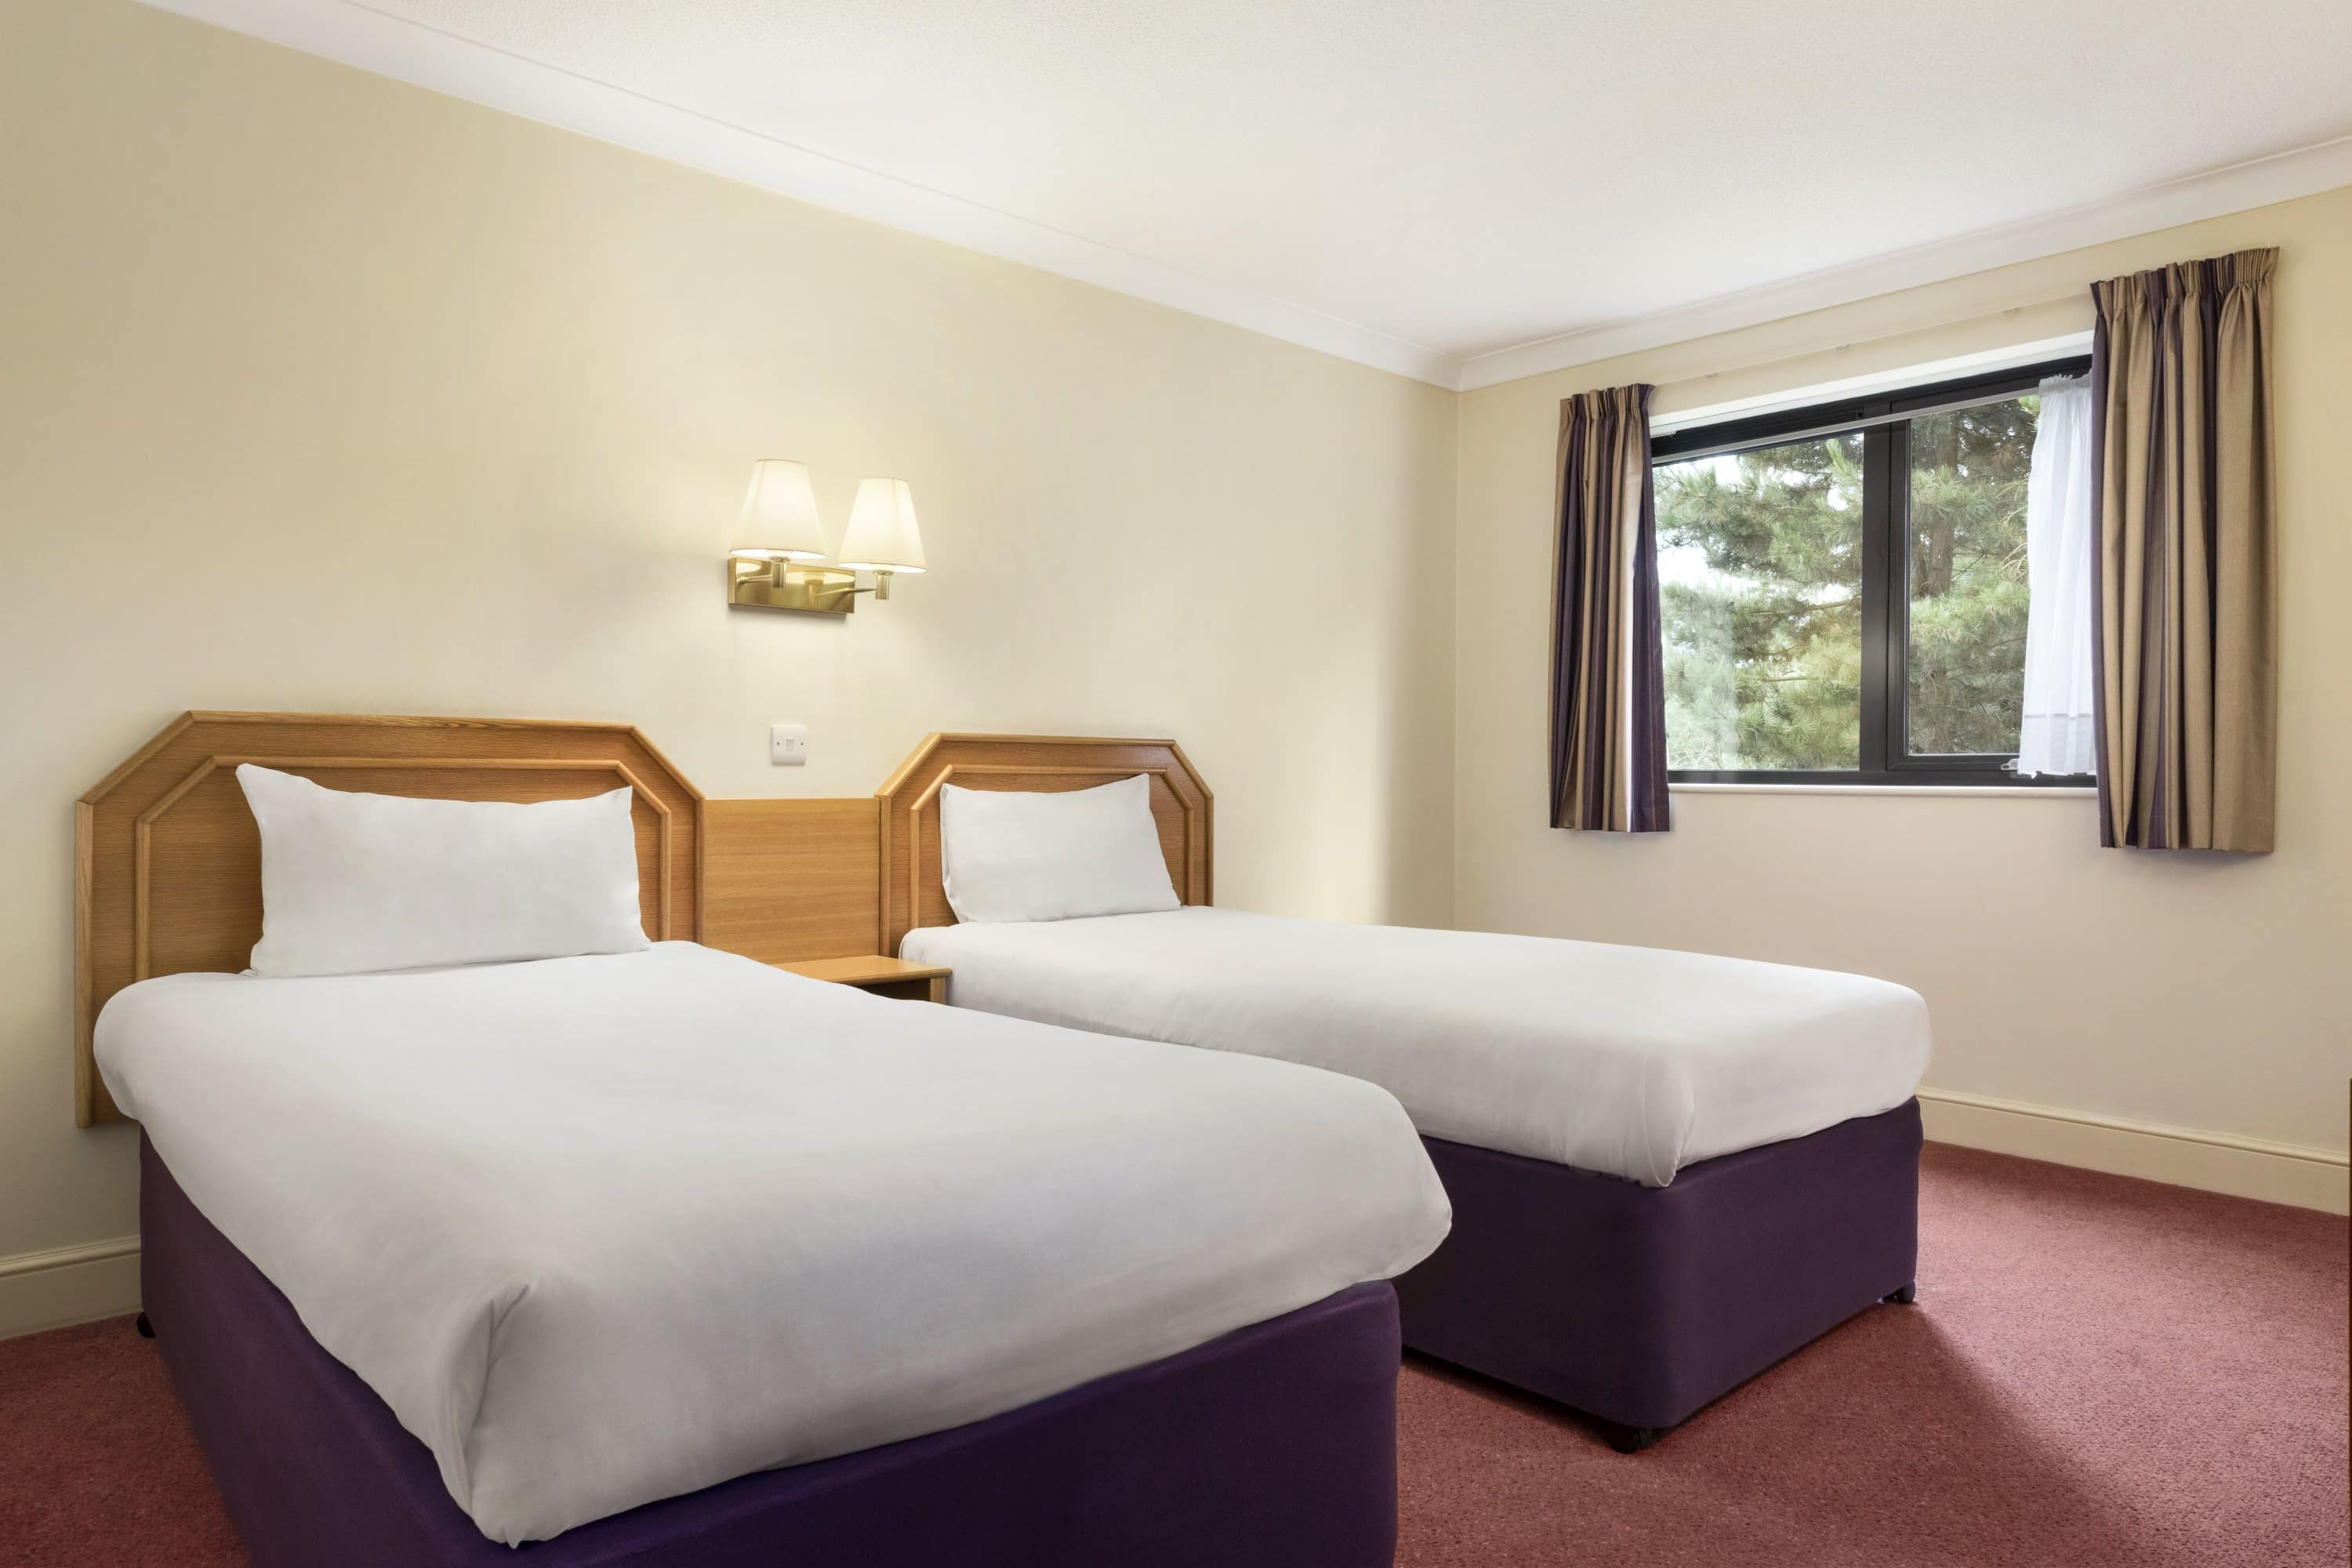 Guest room at the Days Inn Stafford in Stone, Other than US/Canada